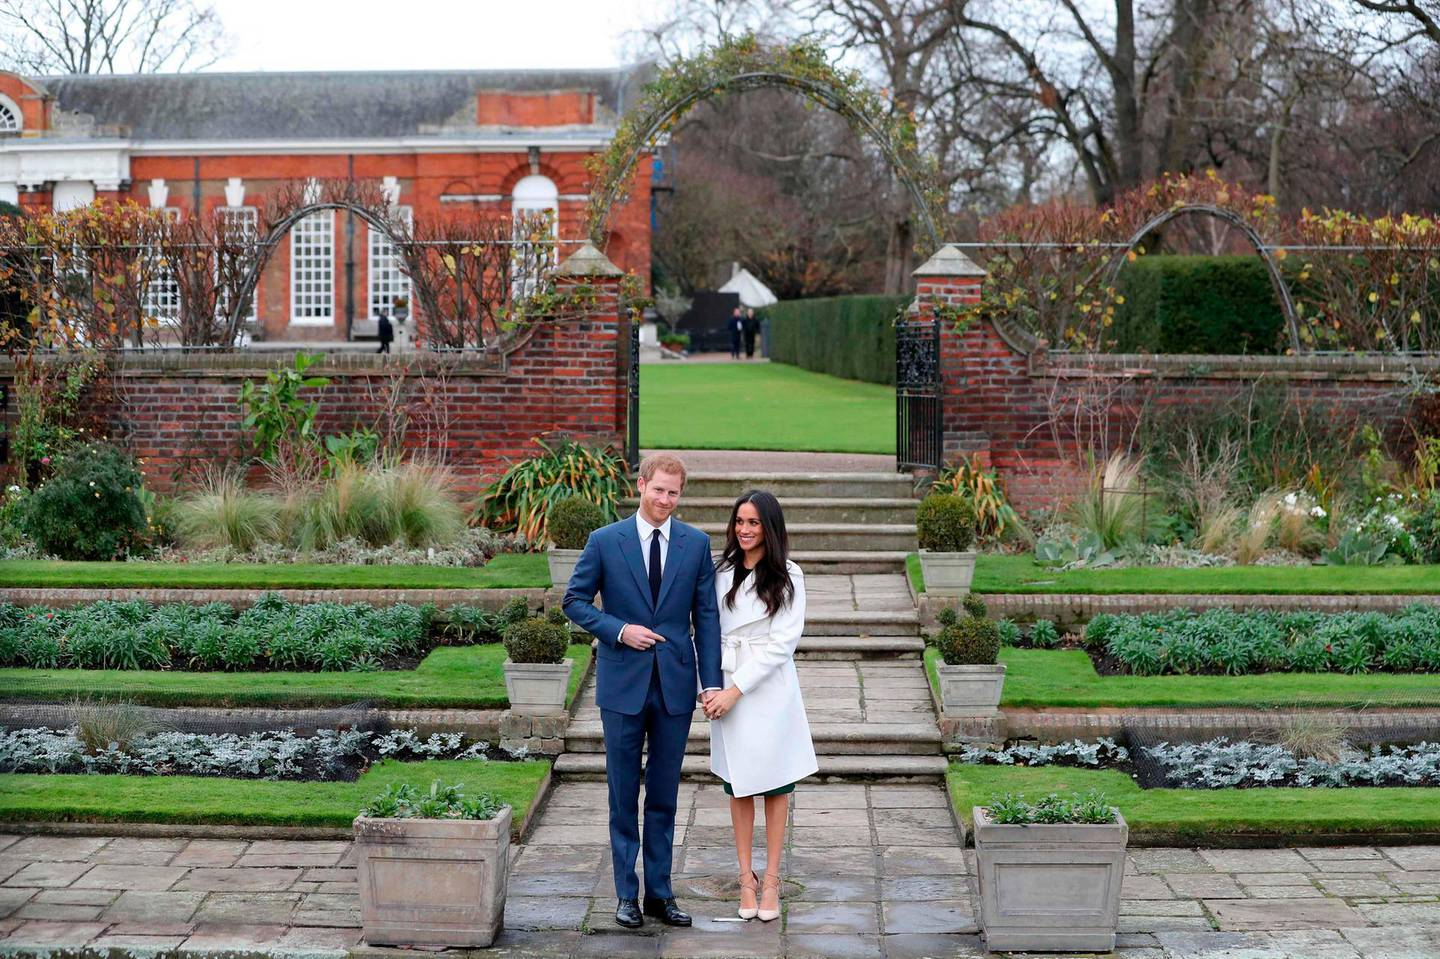 (FILES) In this file photo taken on November 27, 2017 Britain's Prince Harry and his fiancée US actress Meghan Markle pose for a photograph in the Sunken Garden at Kensington Palace in west London on November 27, 2017, following the announcement of their engagement. Kensington Palace, the marital home of Prince Harry and his bride-to-be Meghan Markle, plays host to several royals including his brother Prince William's growing clan. / AFP / Daniel LEAL-OLIVAS